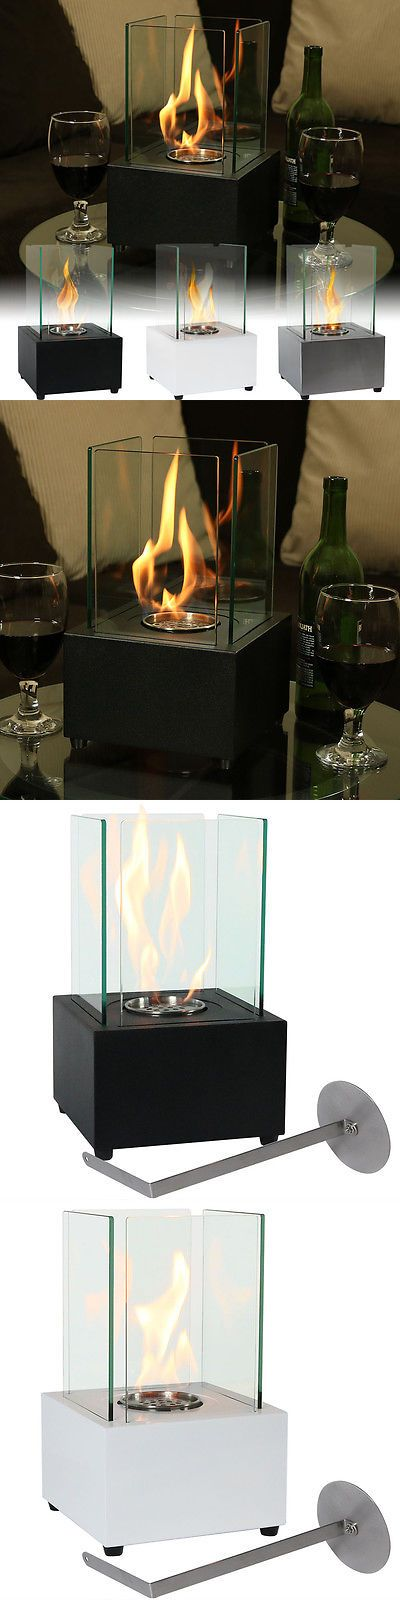 Centerpieces and Table D cor 159928: Sunnydaze Ventless Tabletop Fireplace Cubic Bio Ethanol Modern - Multiple Colors -> BUY IT NOW ONLY: $49.95 on eBay!